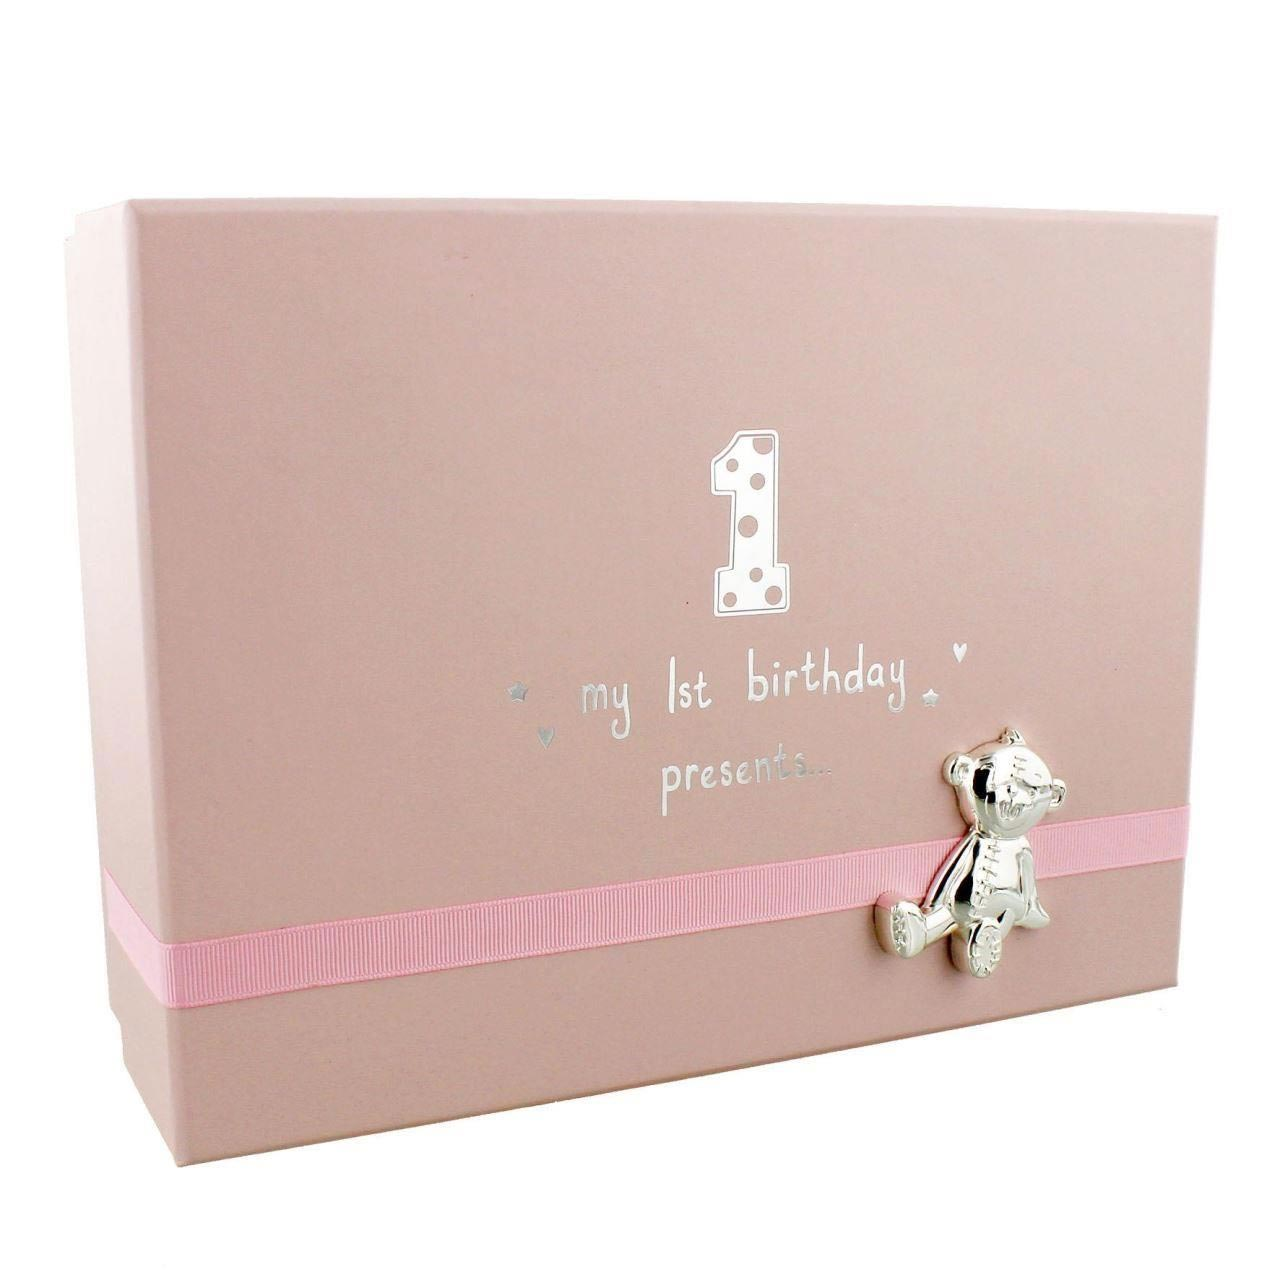 Button Corner - Cutie amintiri My 1st Birthday - pink